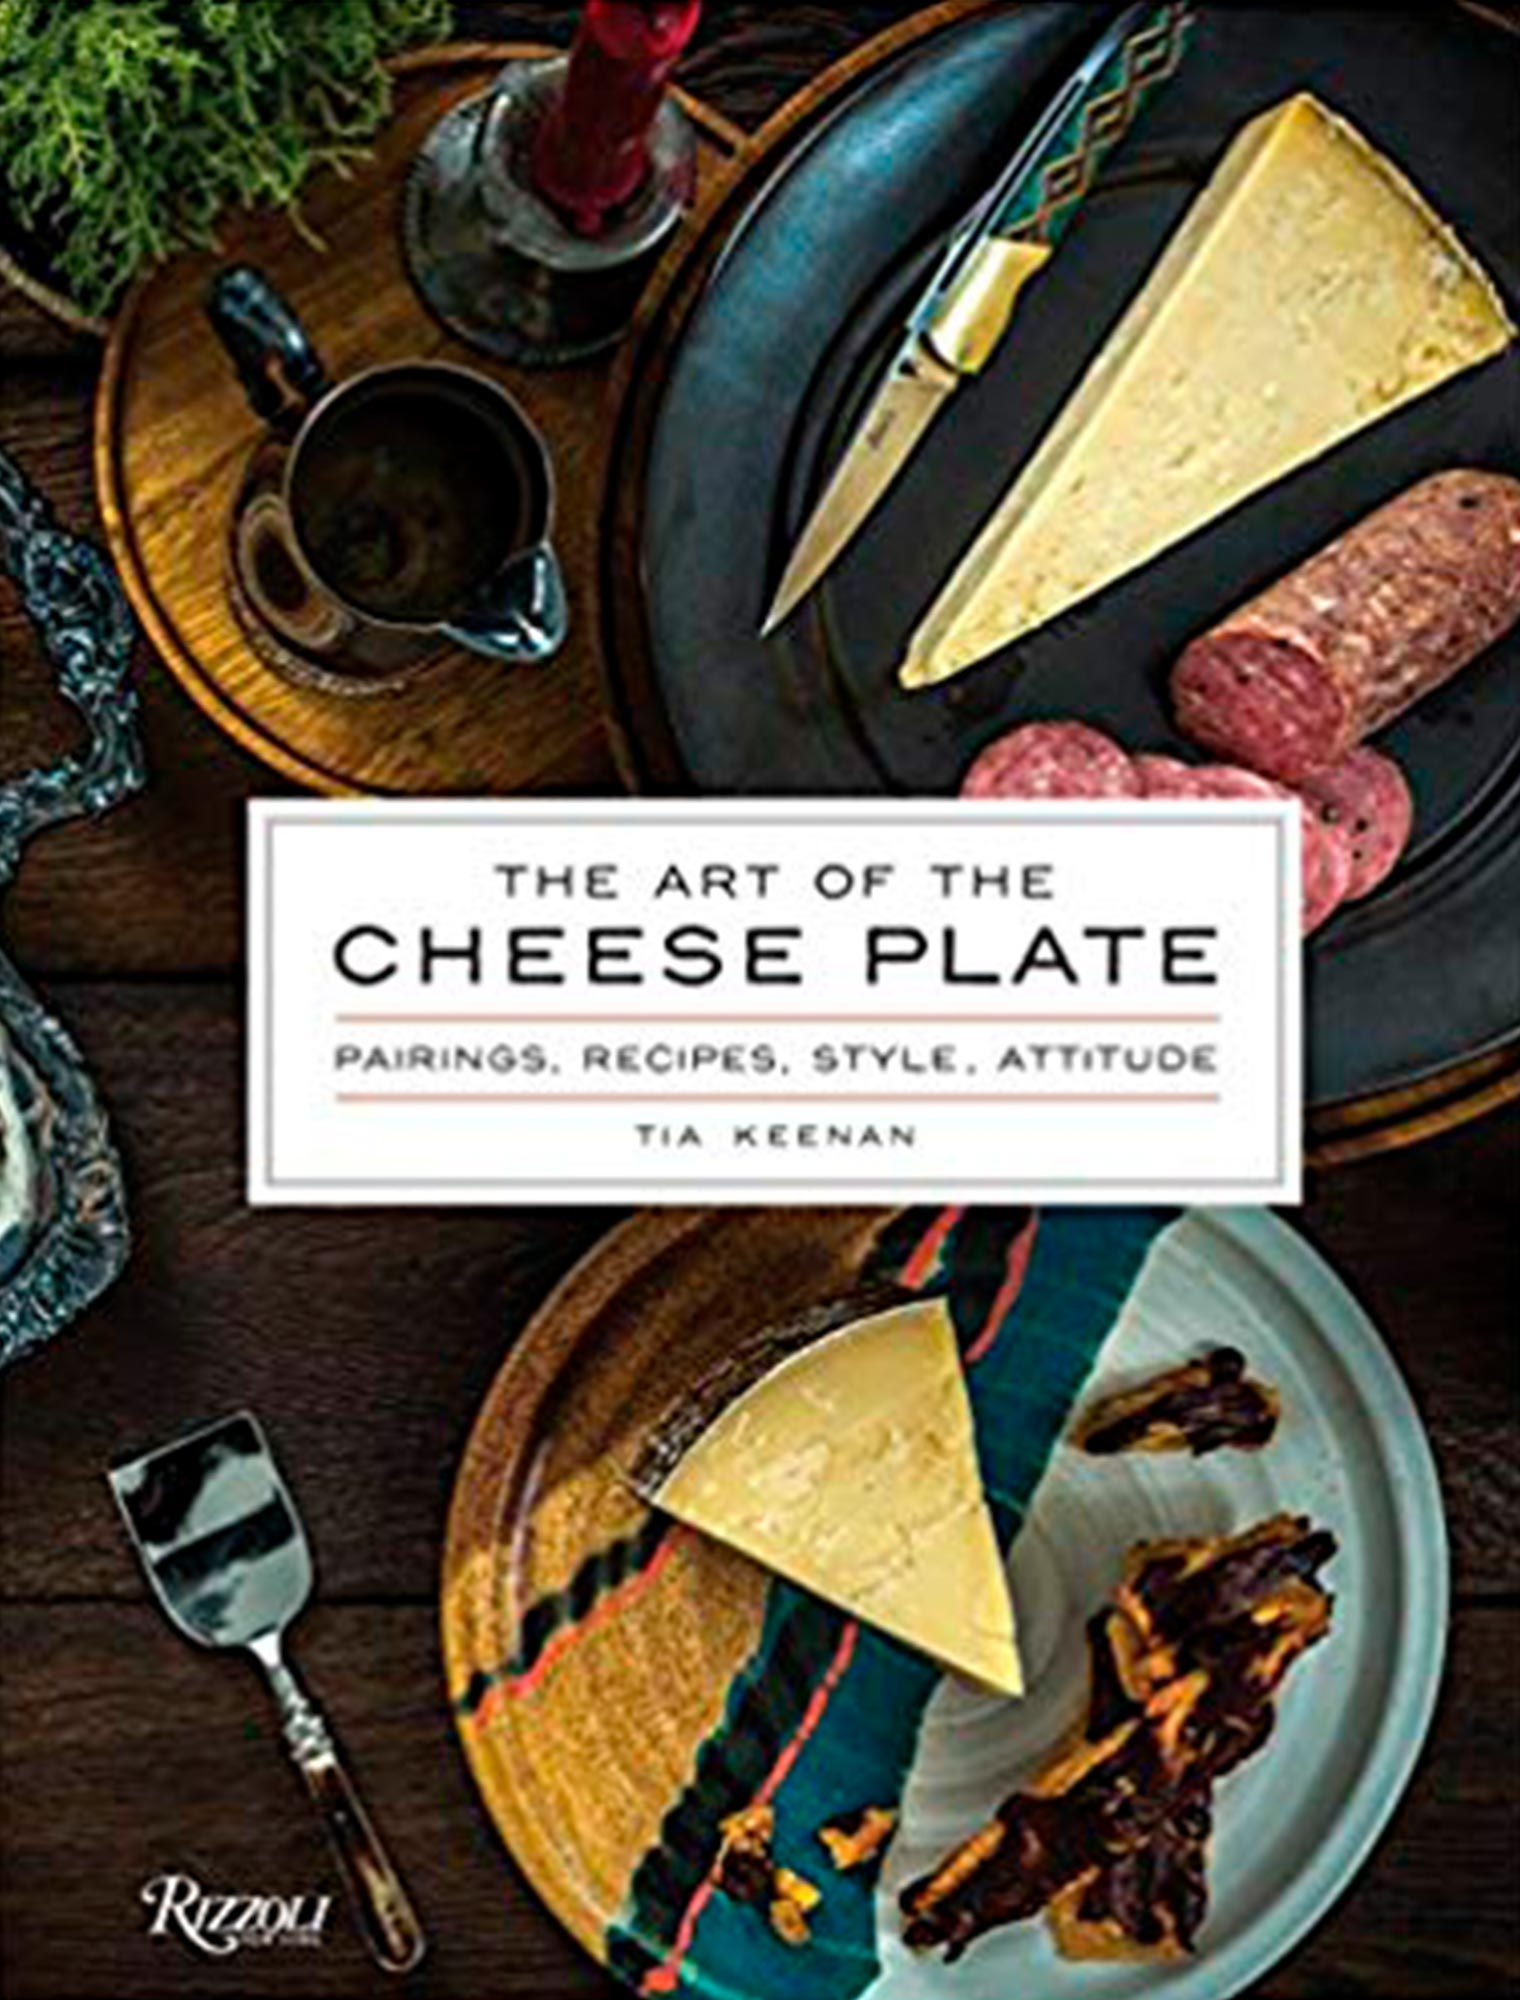 The Art of the Cheese Platter